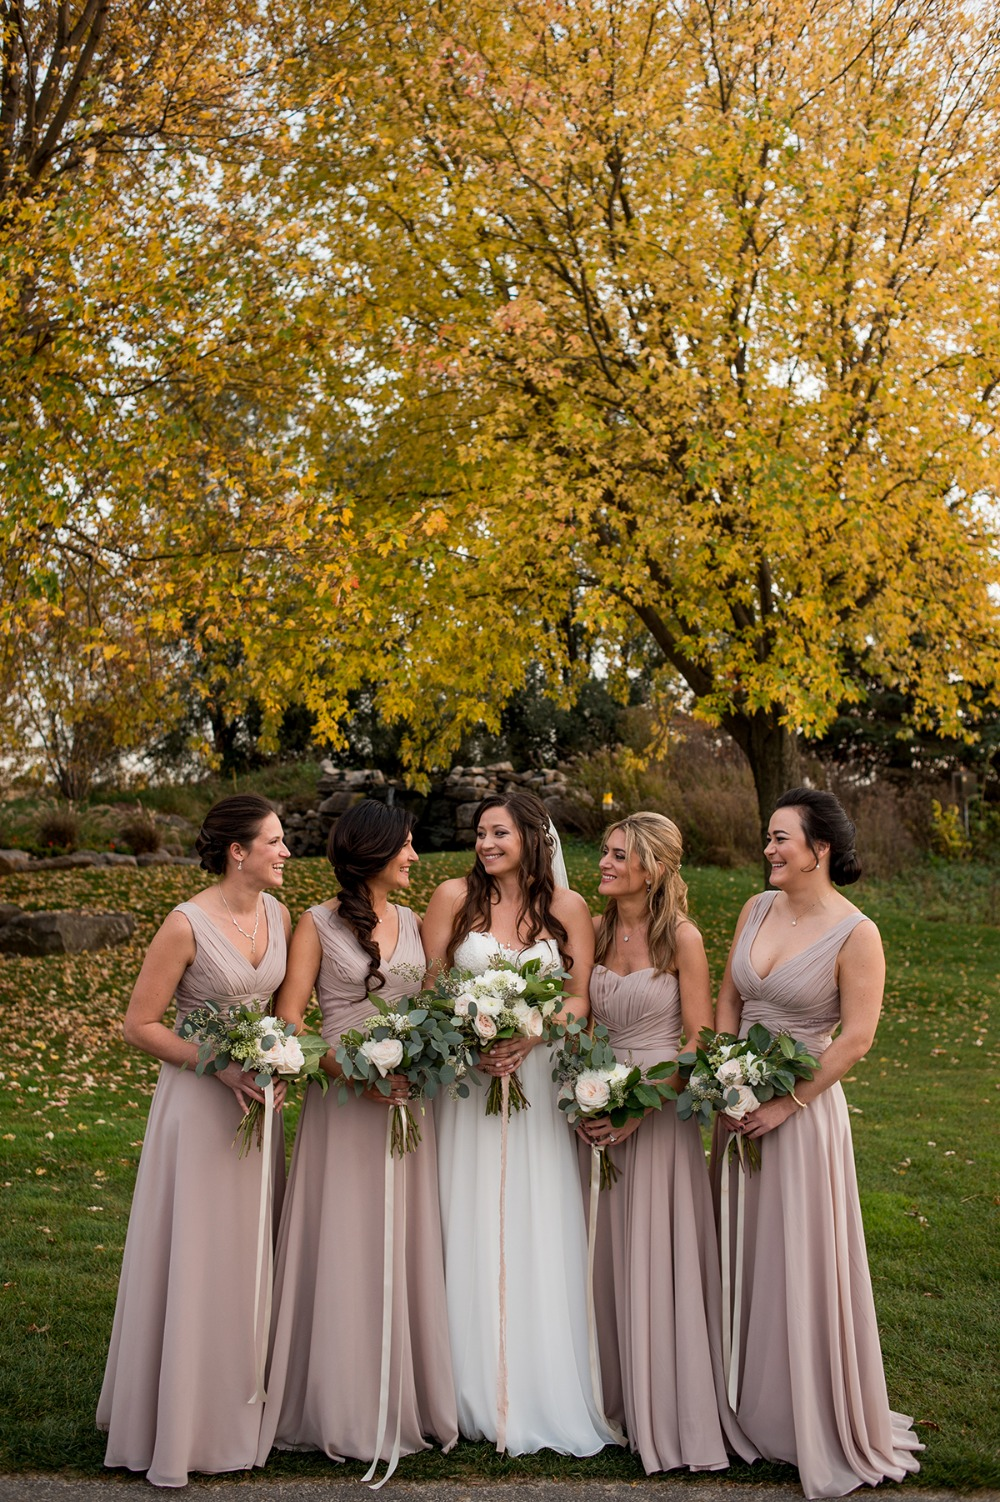 You'll Fall For This All Too Perfect Autumn Wedding Day